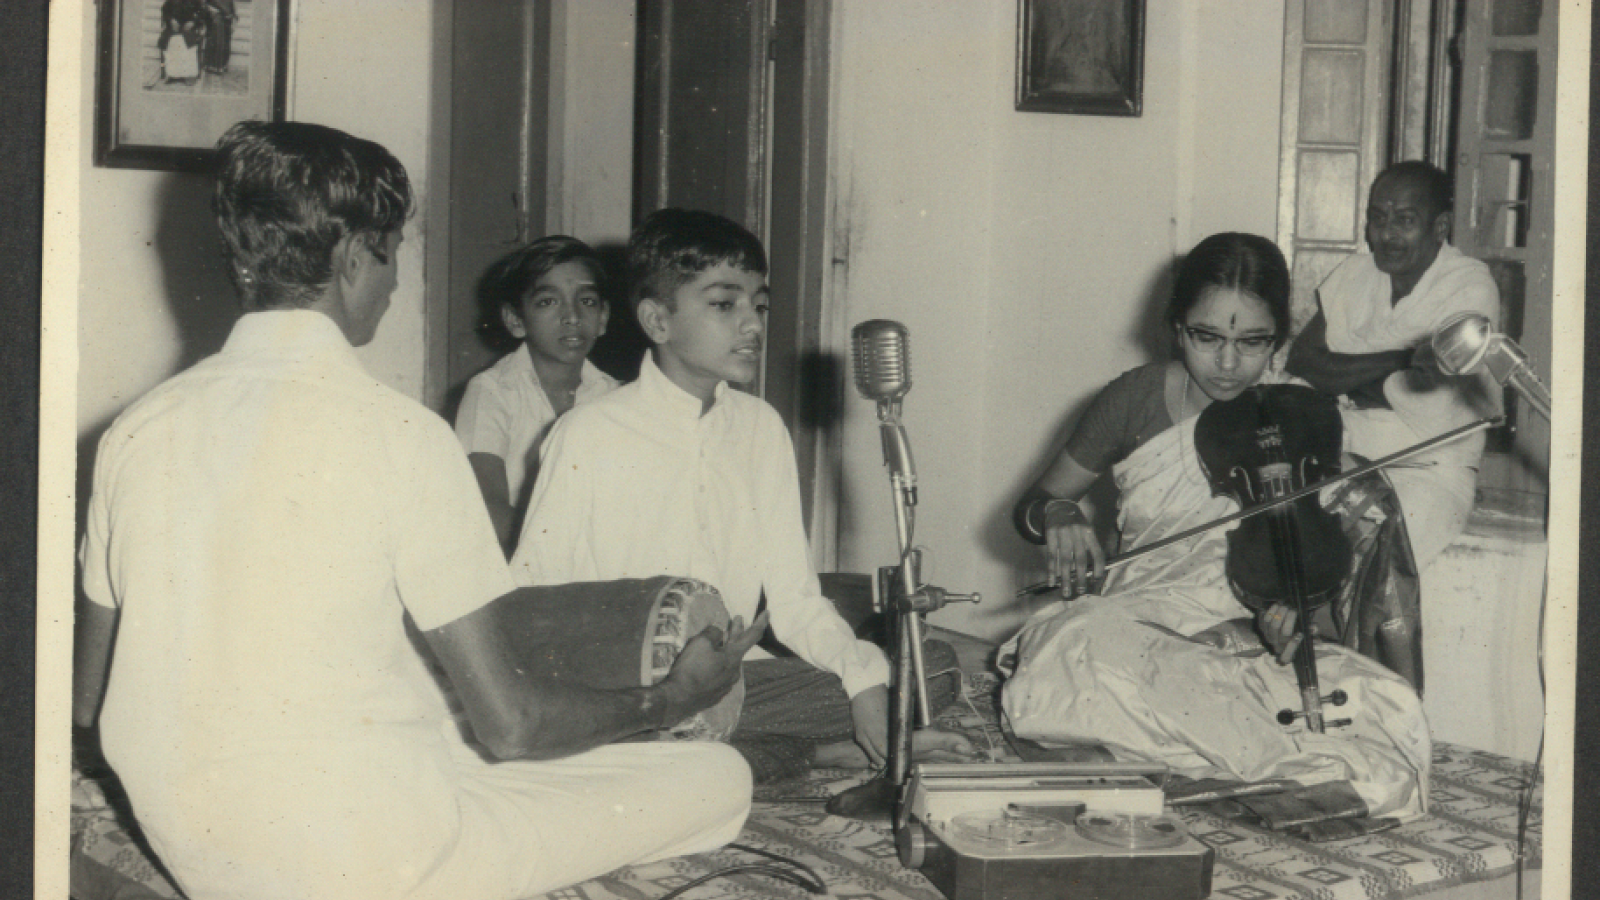 Photo of young Kannikeswaran singing into microphone while others, possibly his family, play instruments